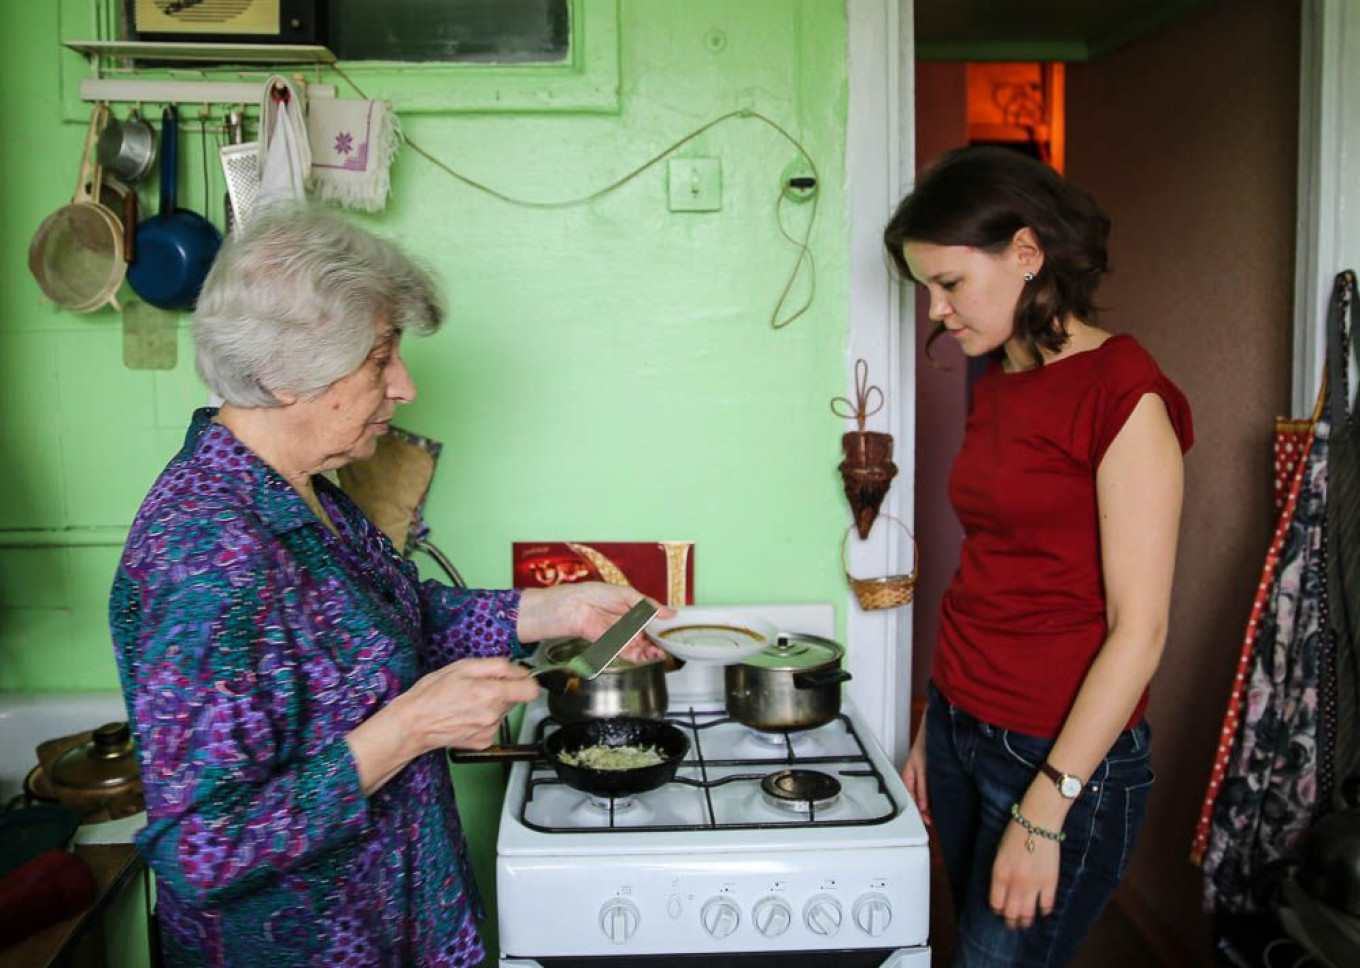 Cooking in a small Soviet-era kitchen could be challenging.				 				Jennifer Eremeeva / MT